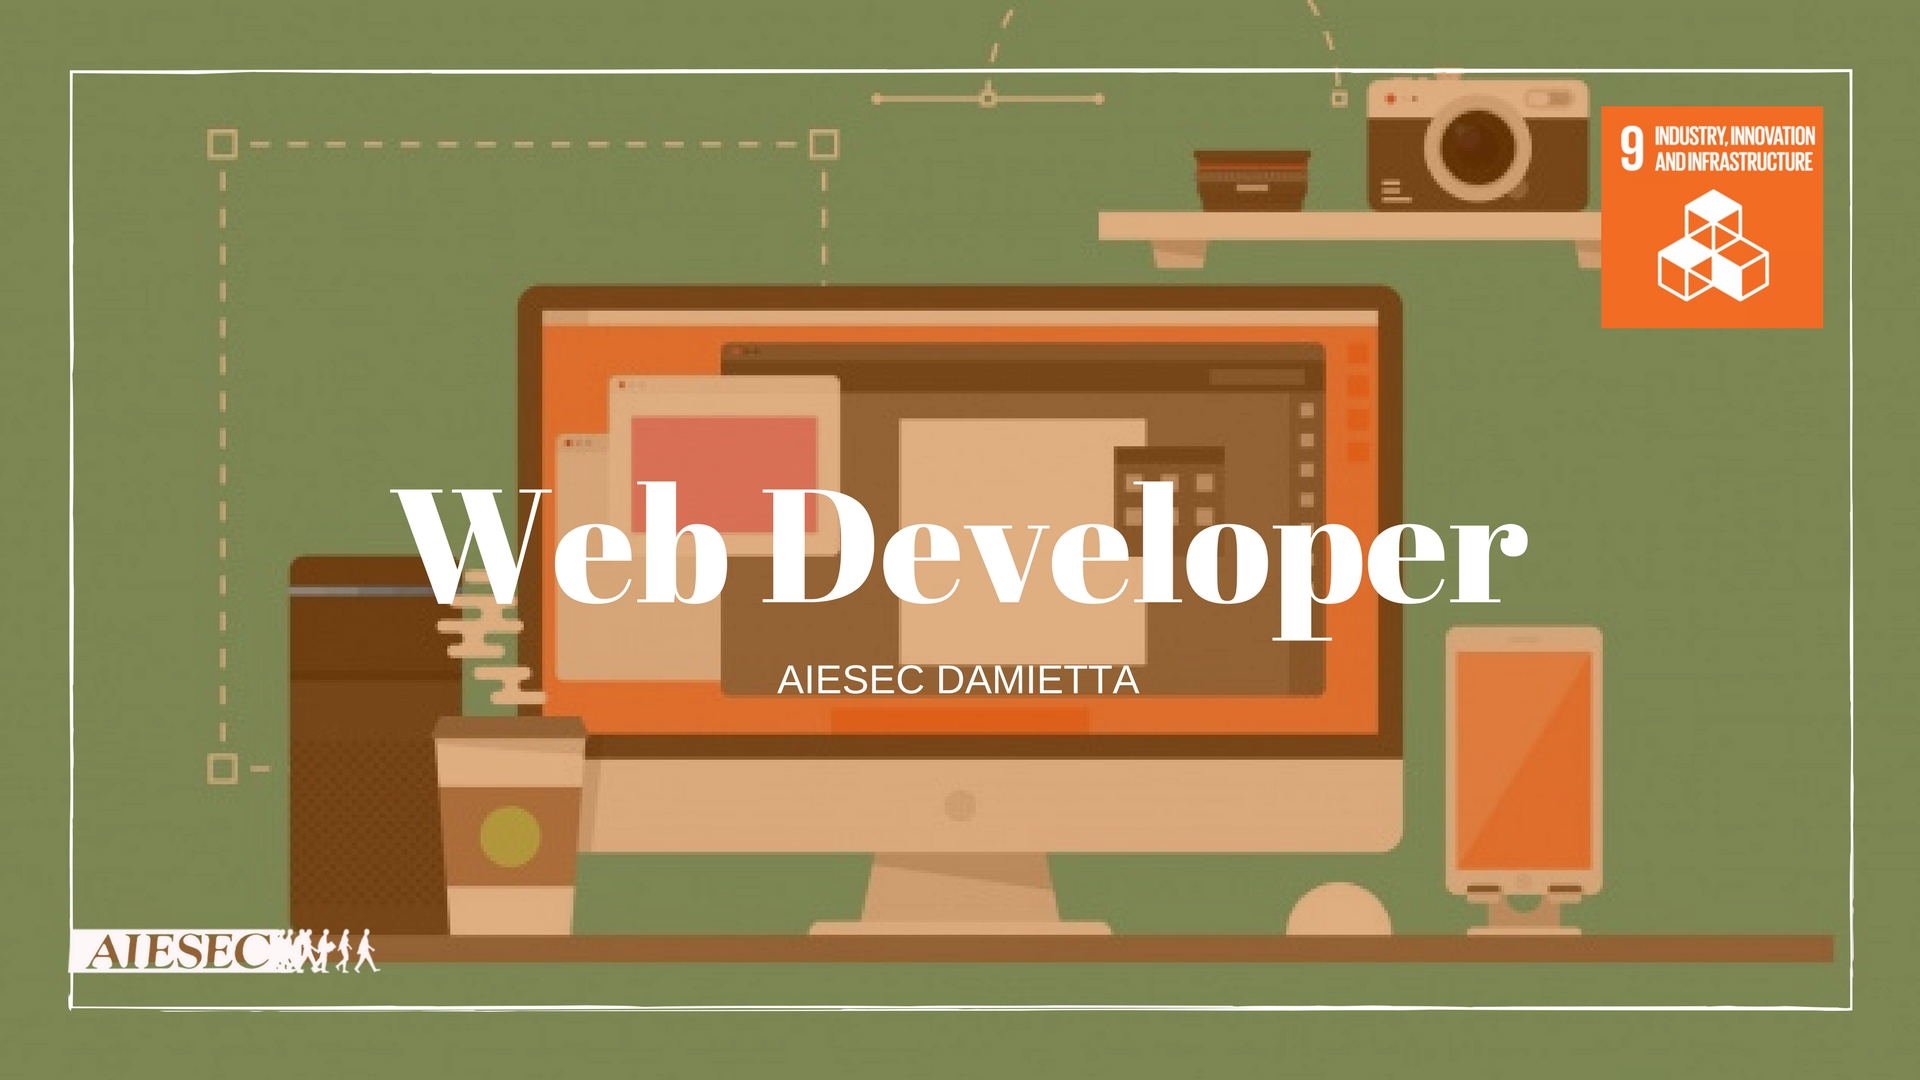 Web Developer  for industry innovation and infrastructure